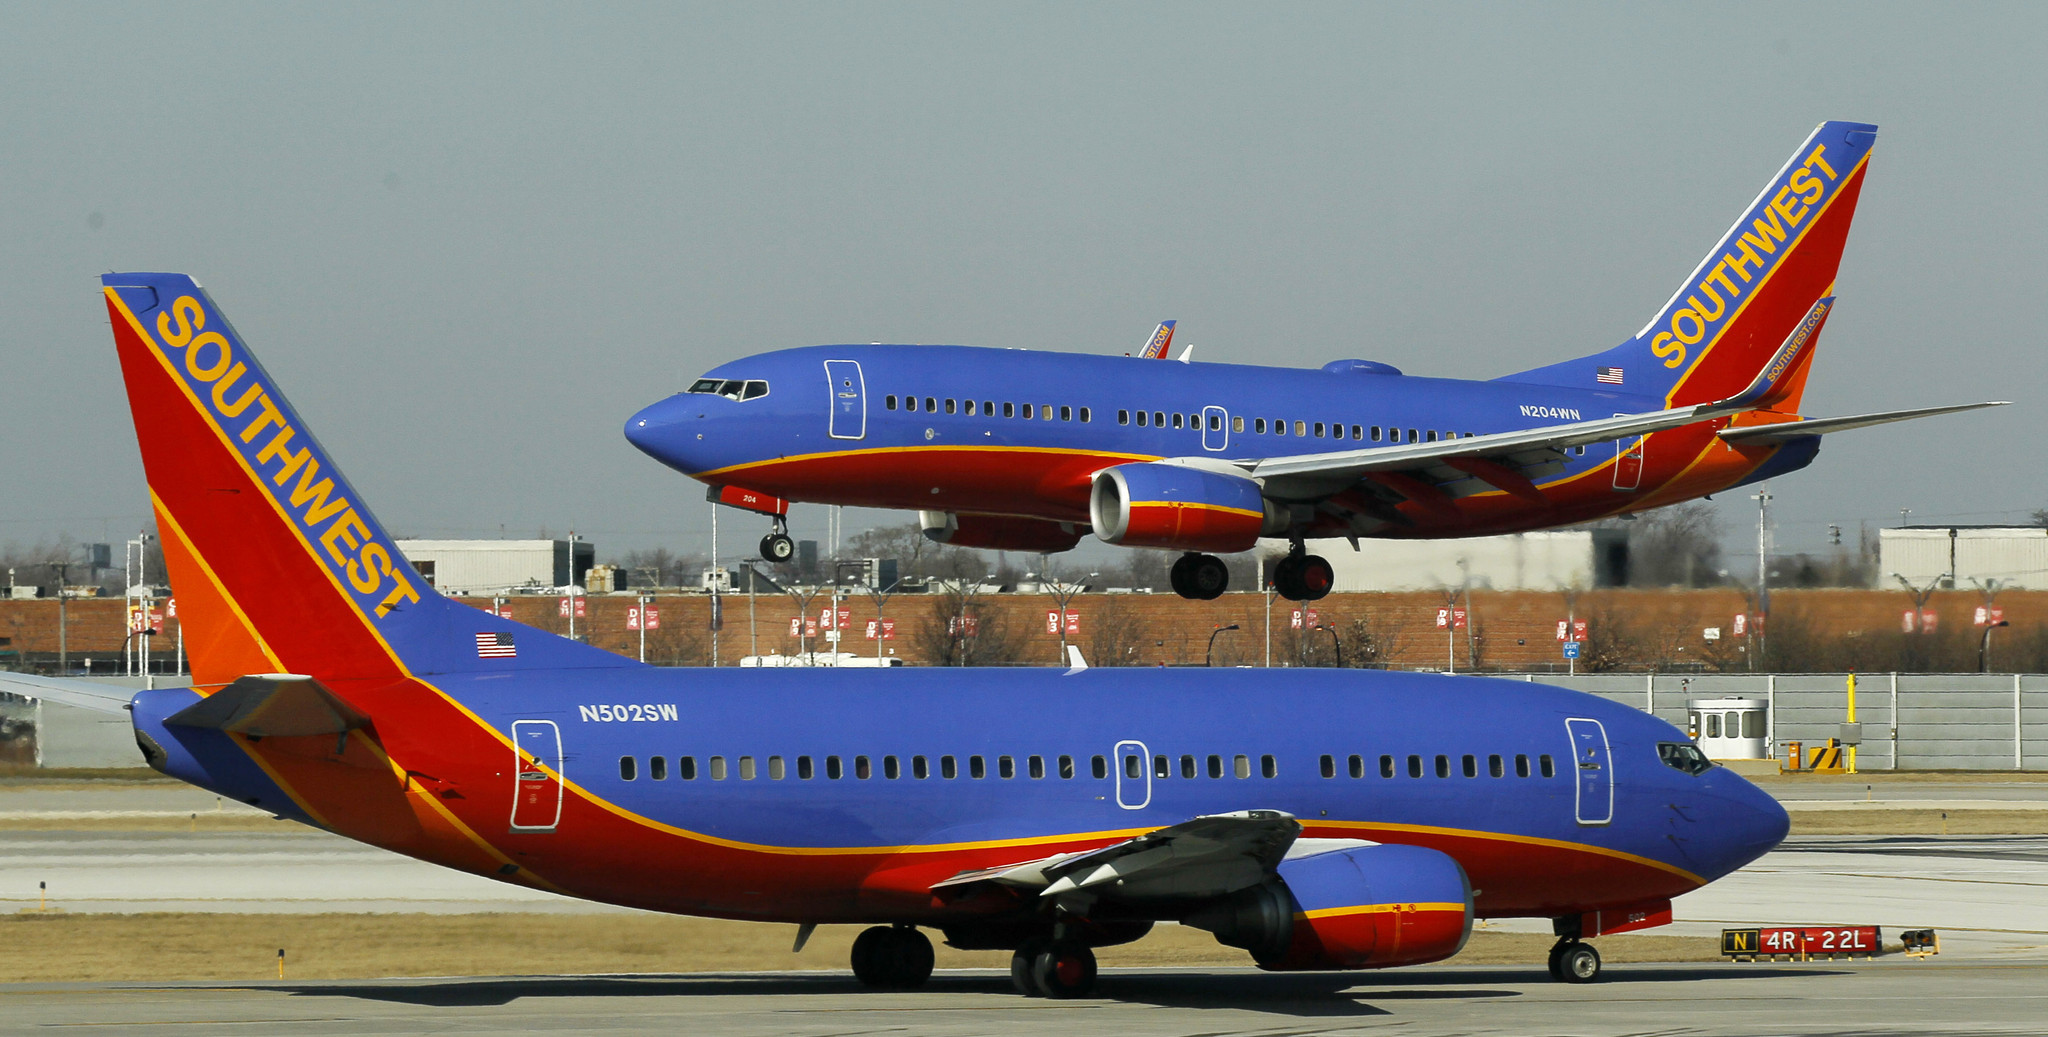 Southwest Airlines' on-time performance still lags